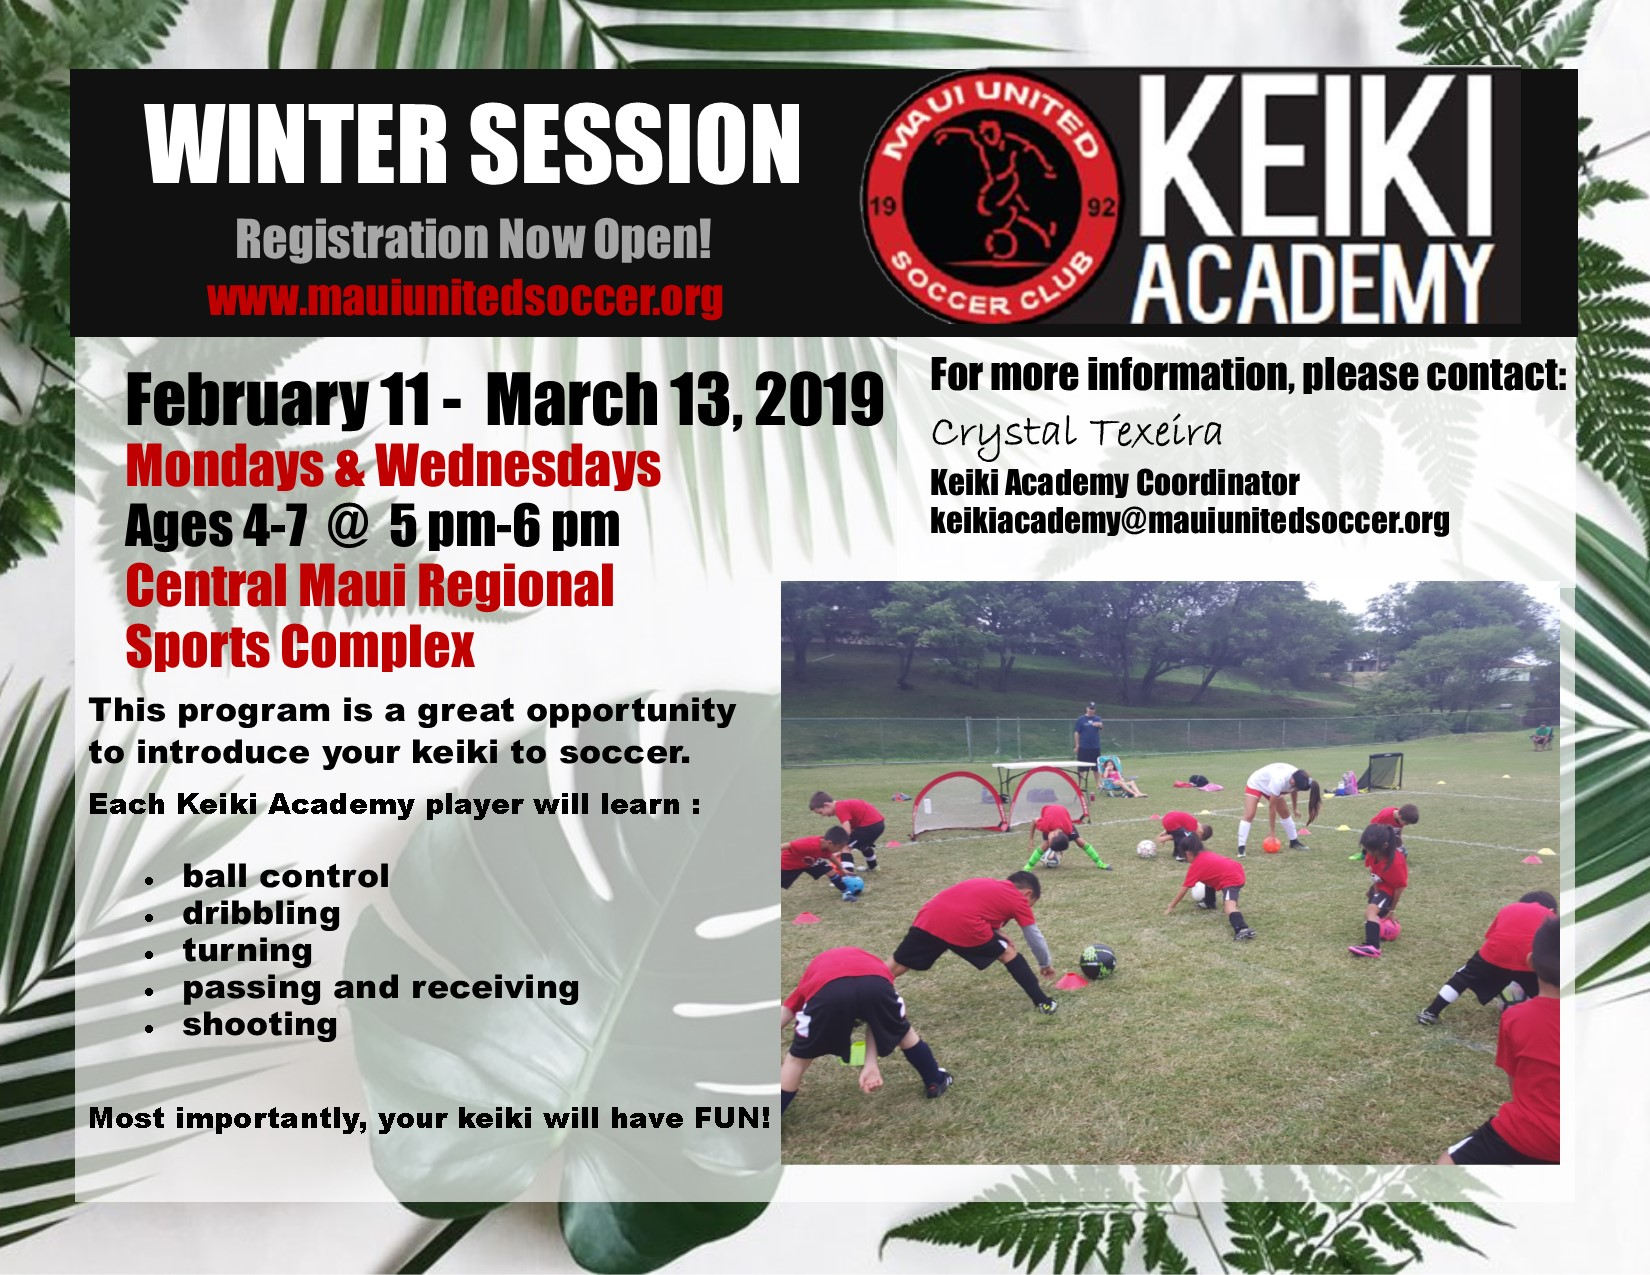 Spring Session          February 11, 2019 - March 13, 2019